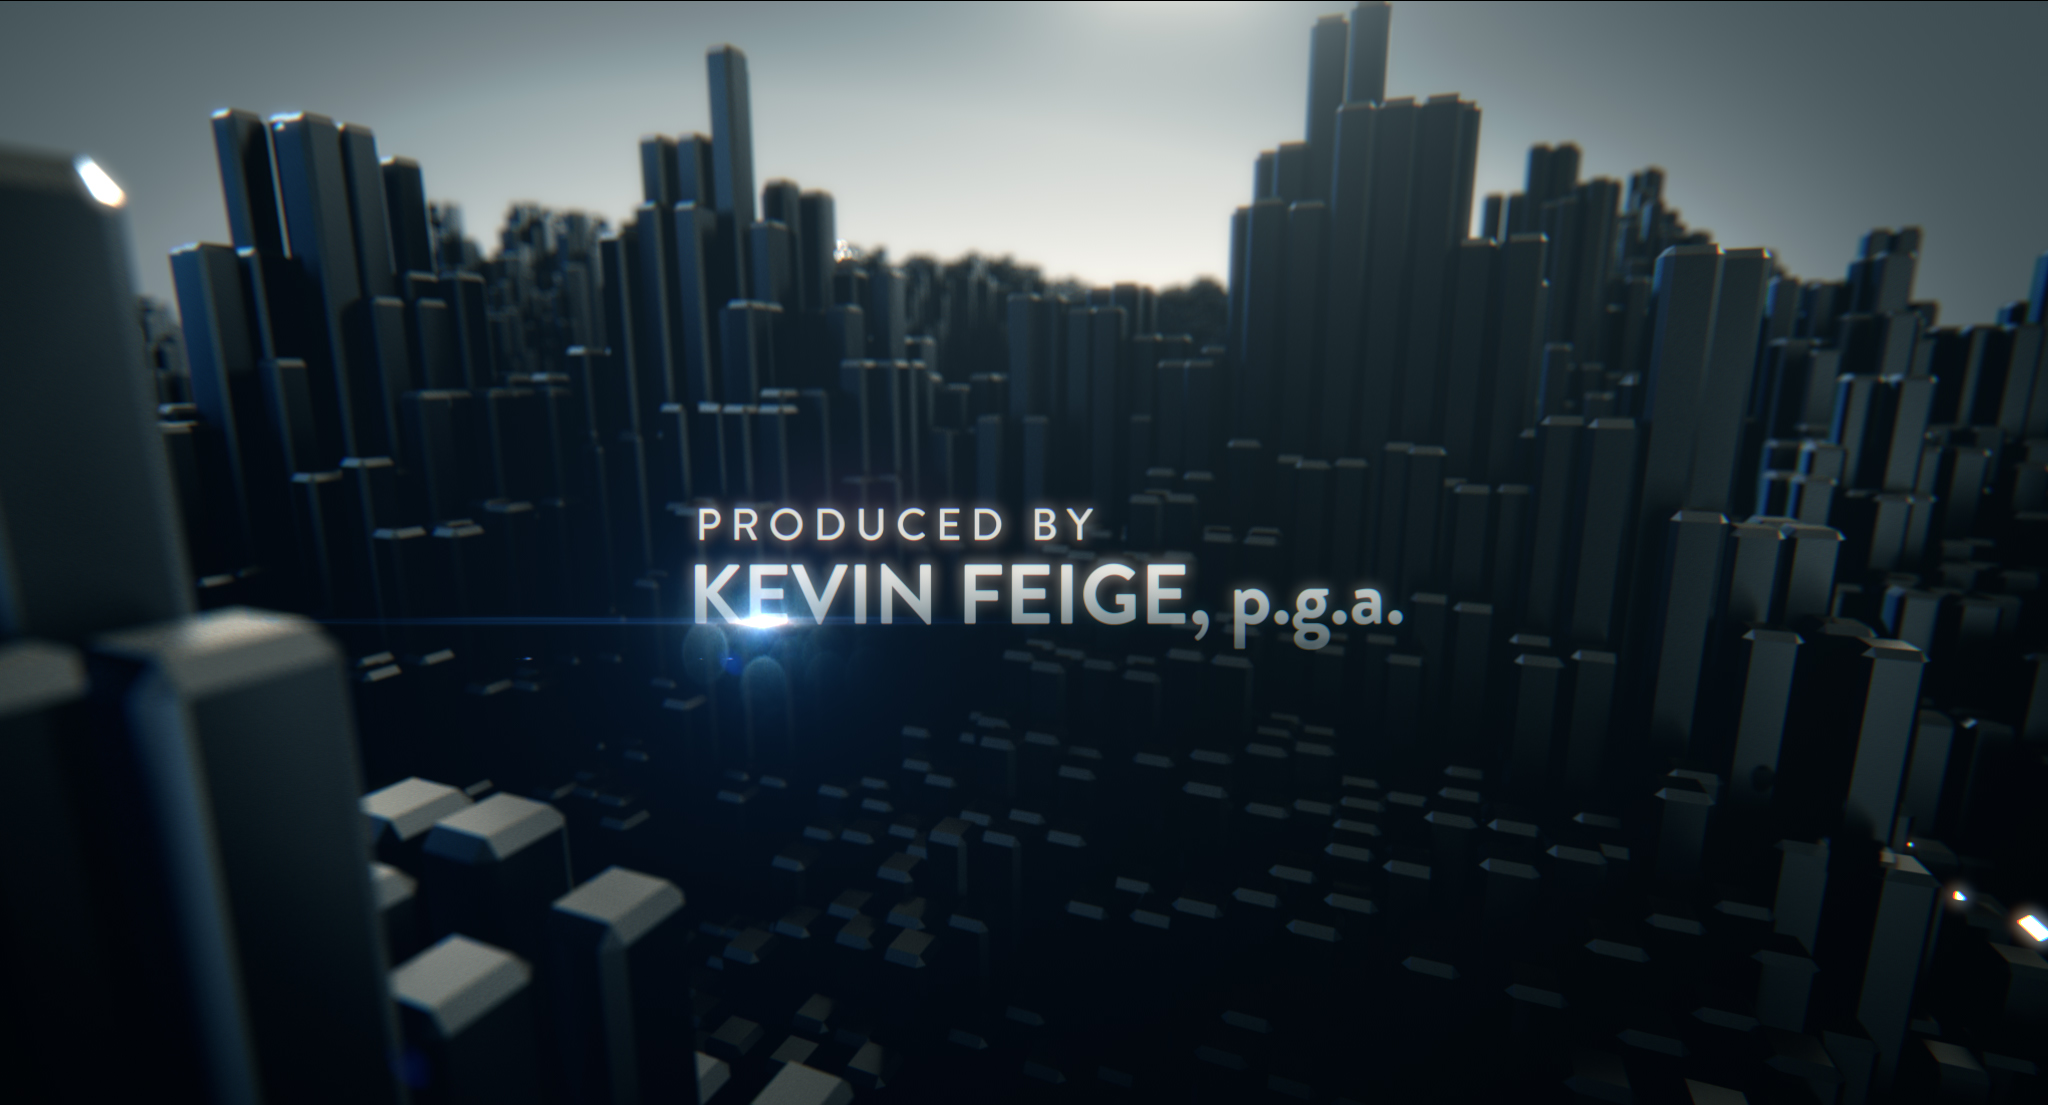 DRS_v03a_titleSequence_frm4.0001.jpg